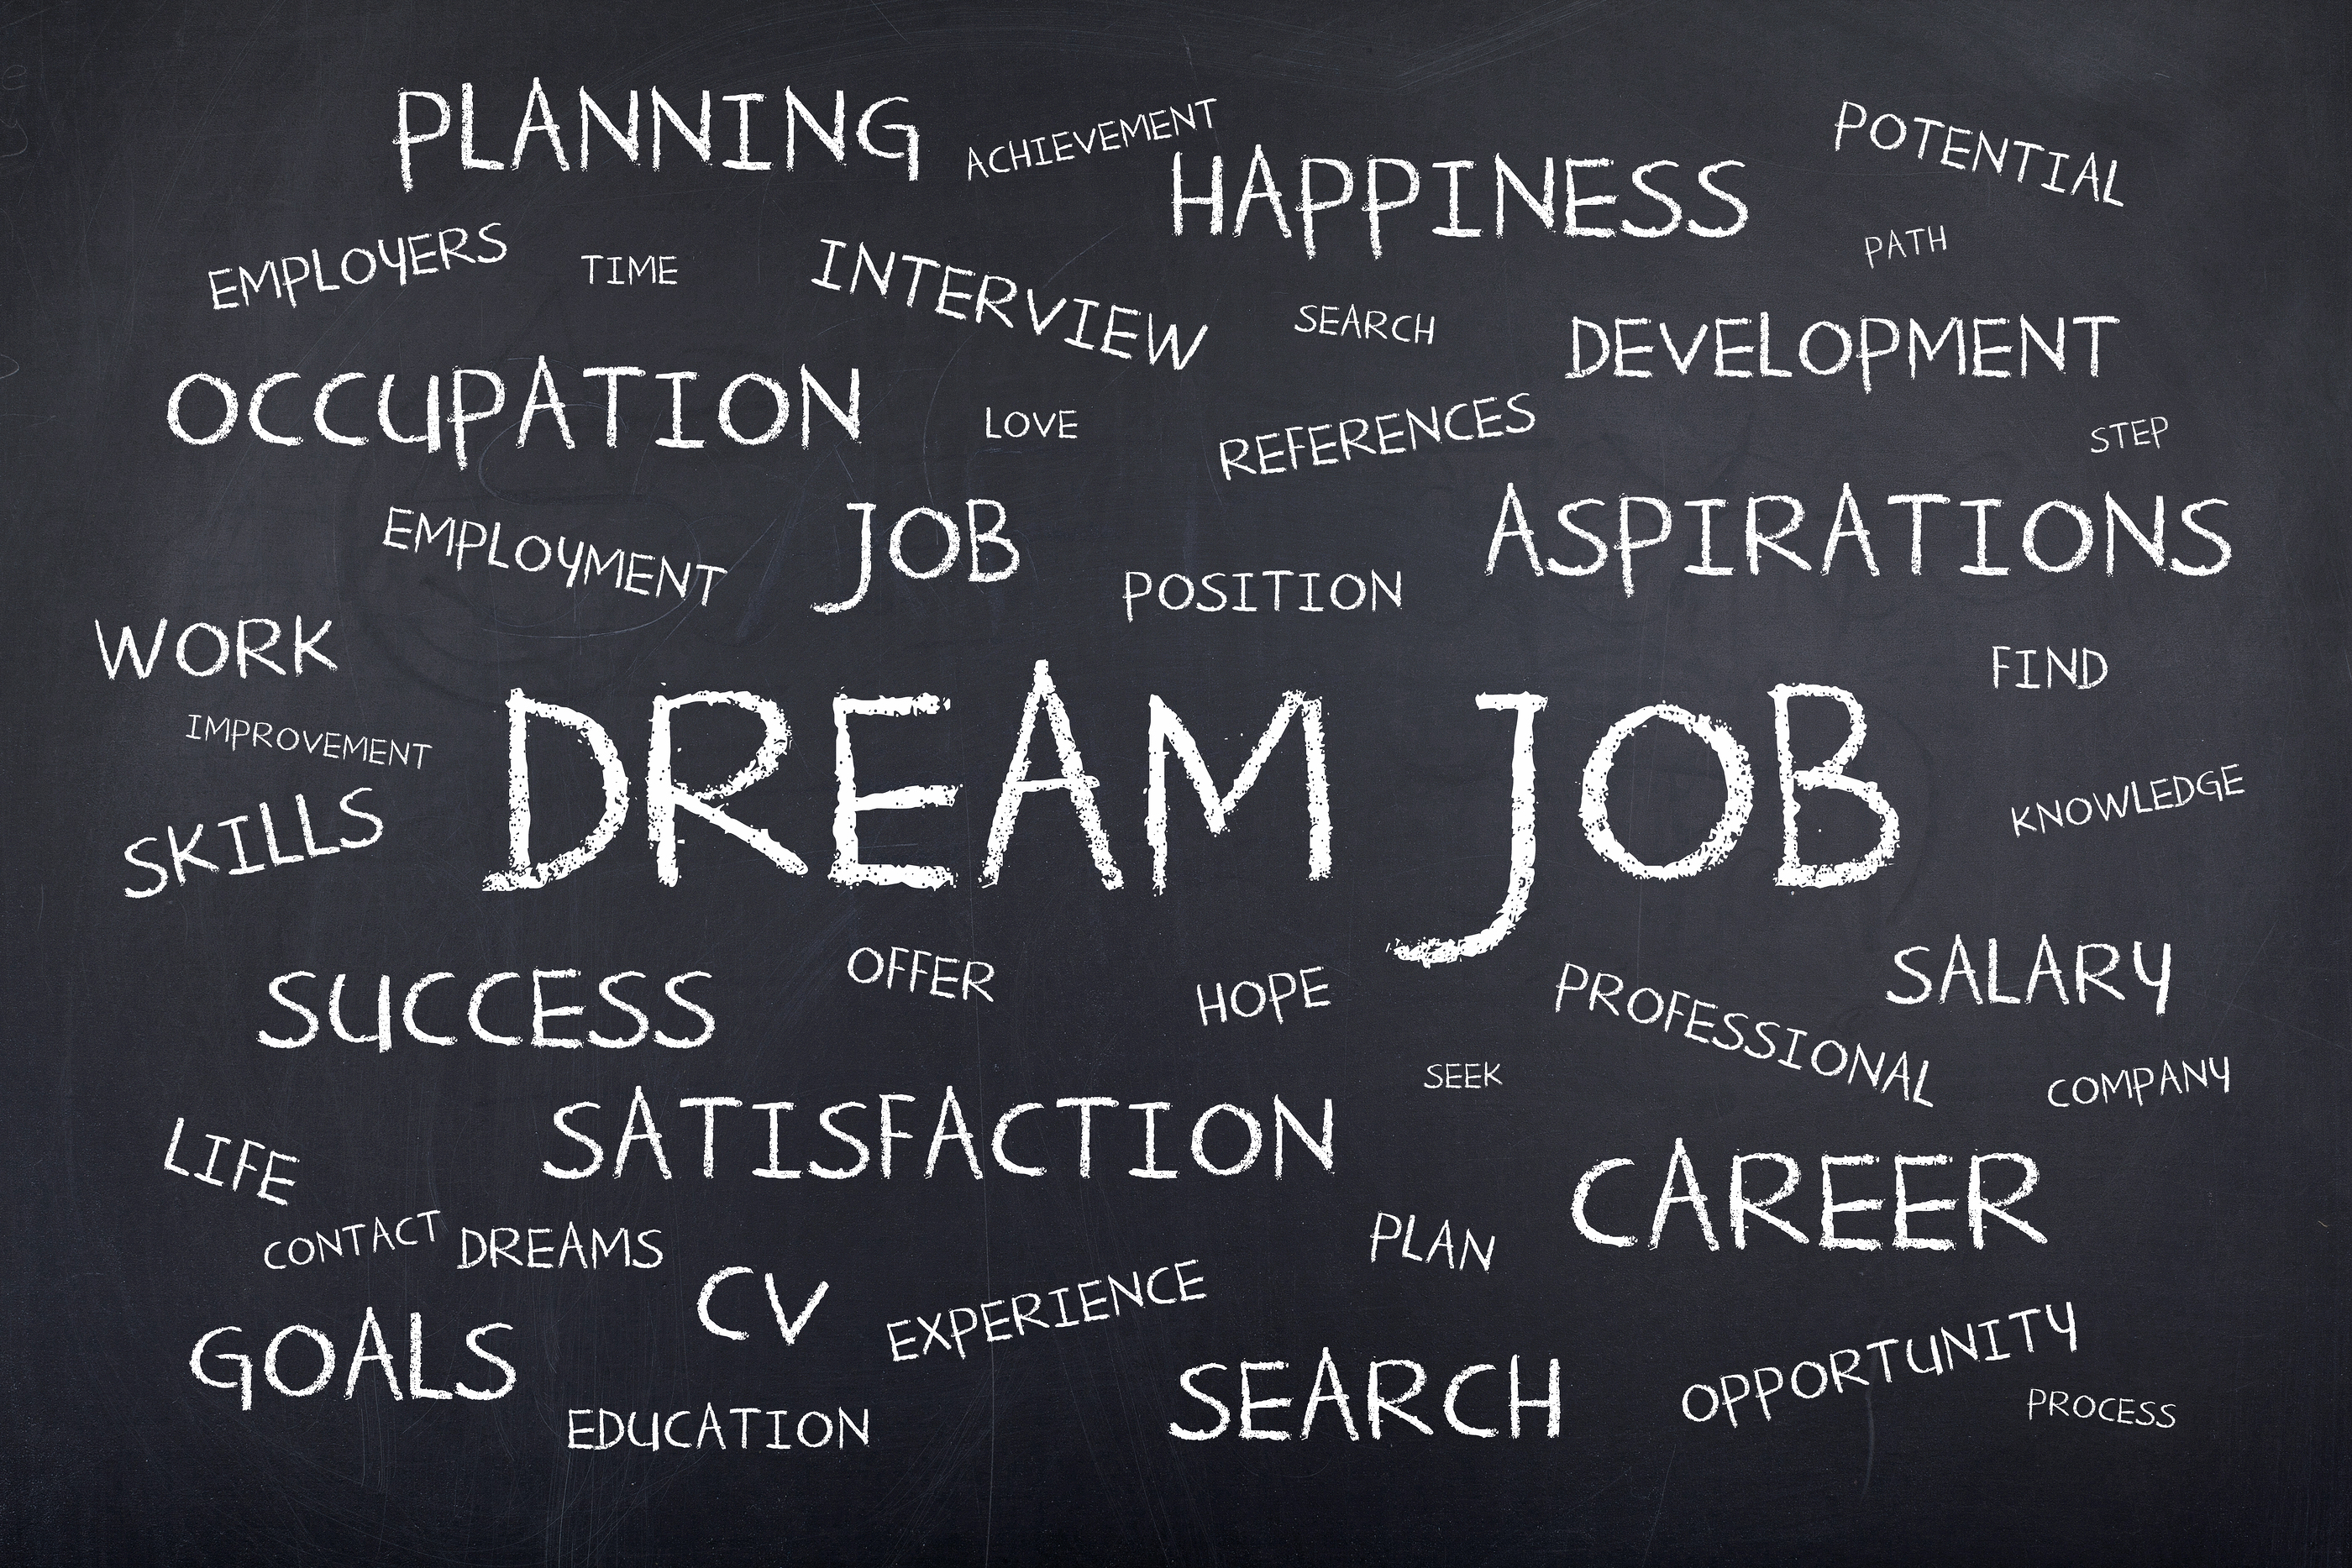 ready for help finding your dream career are you prepared ready for help finding your dream career are you prepared building careers llc a san diego commercial real estate recruiter